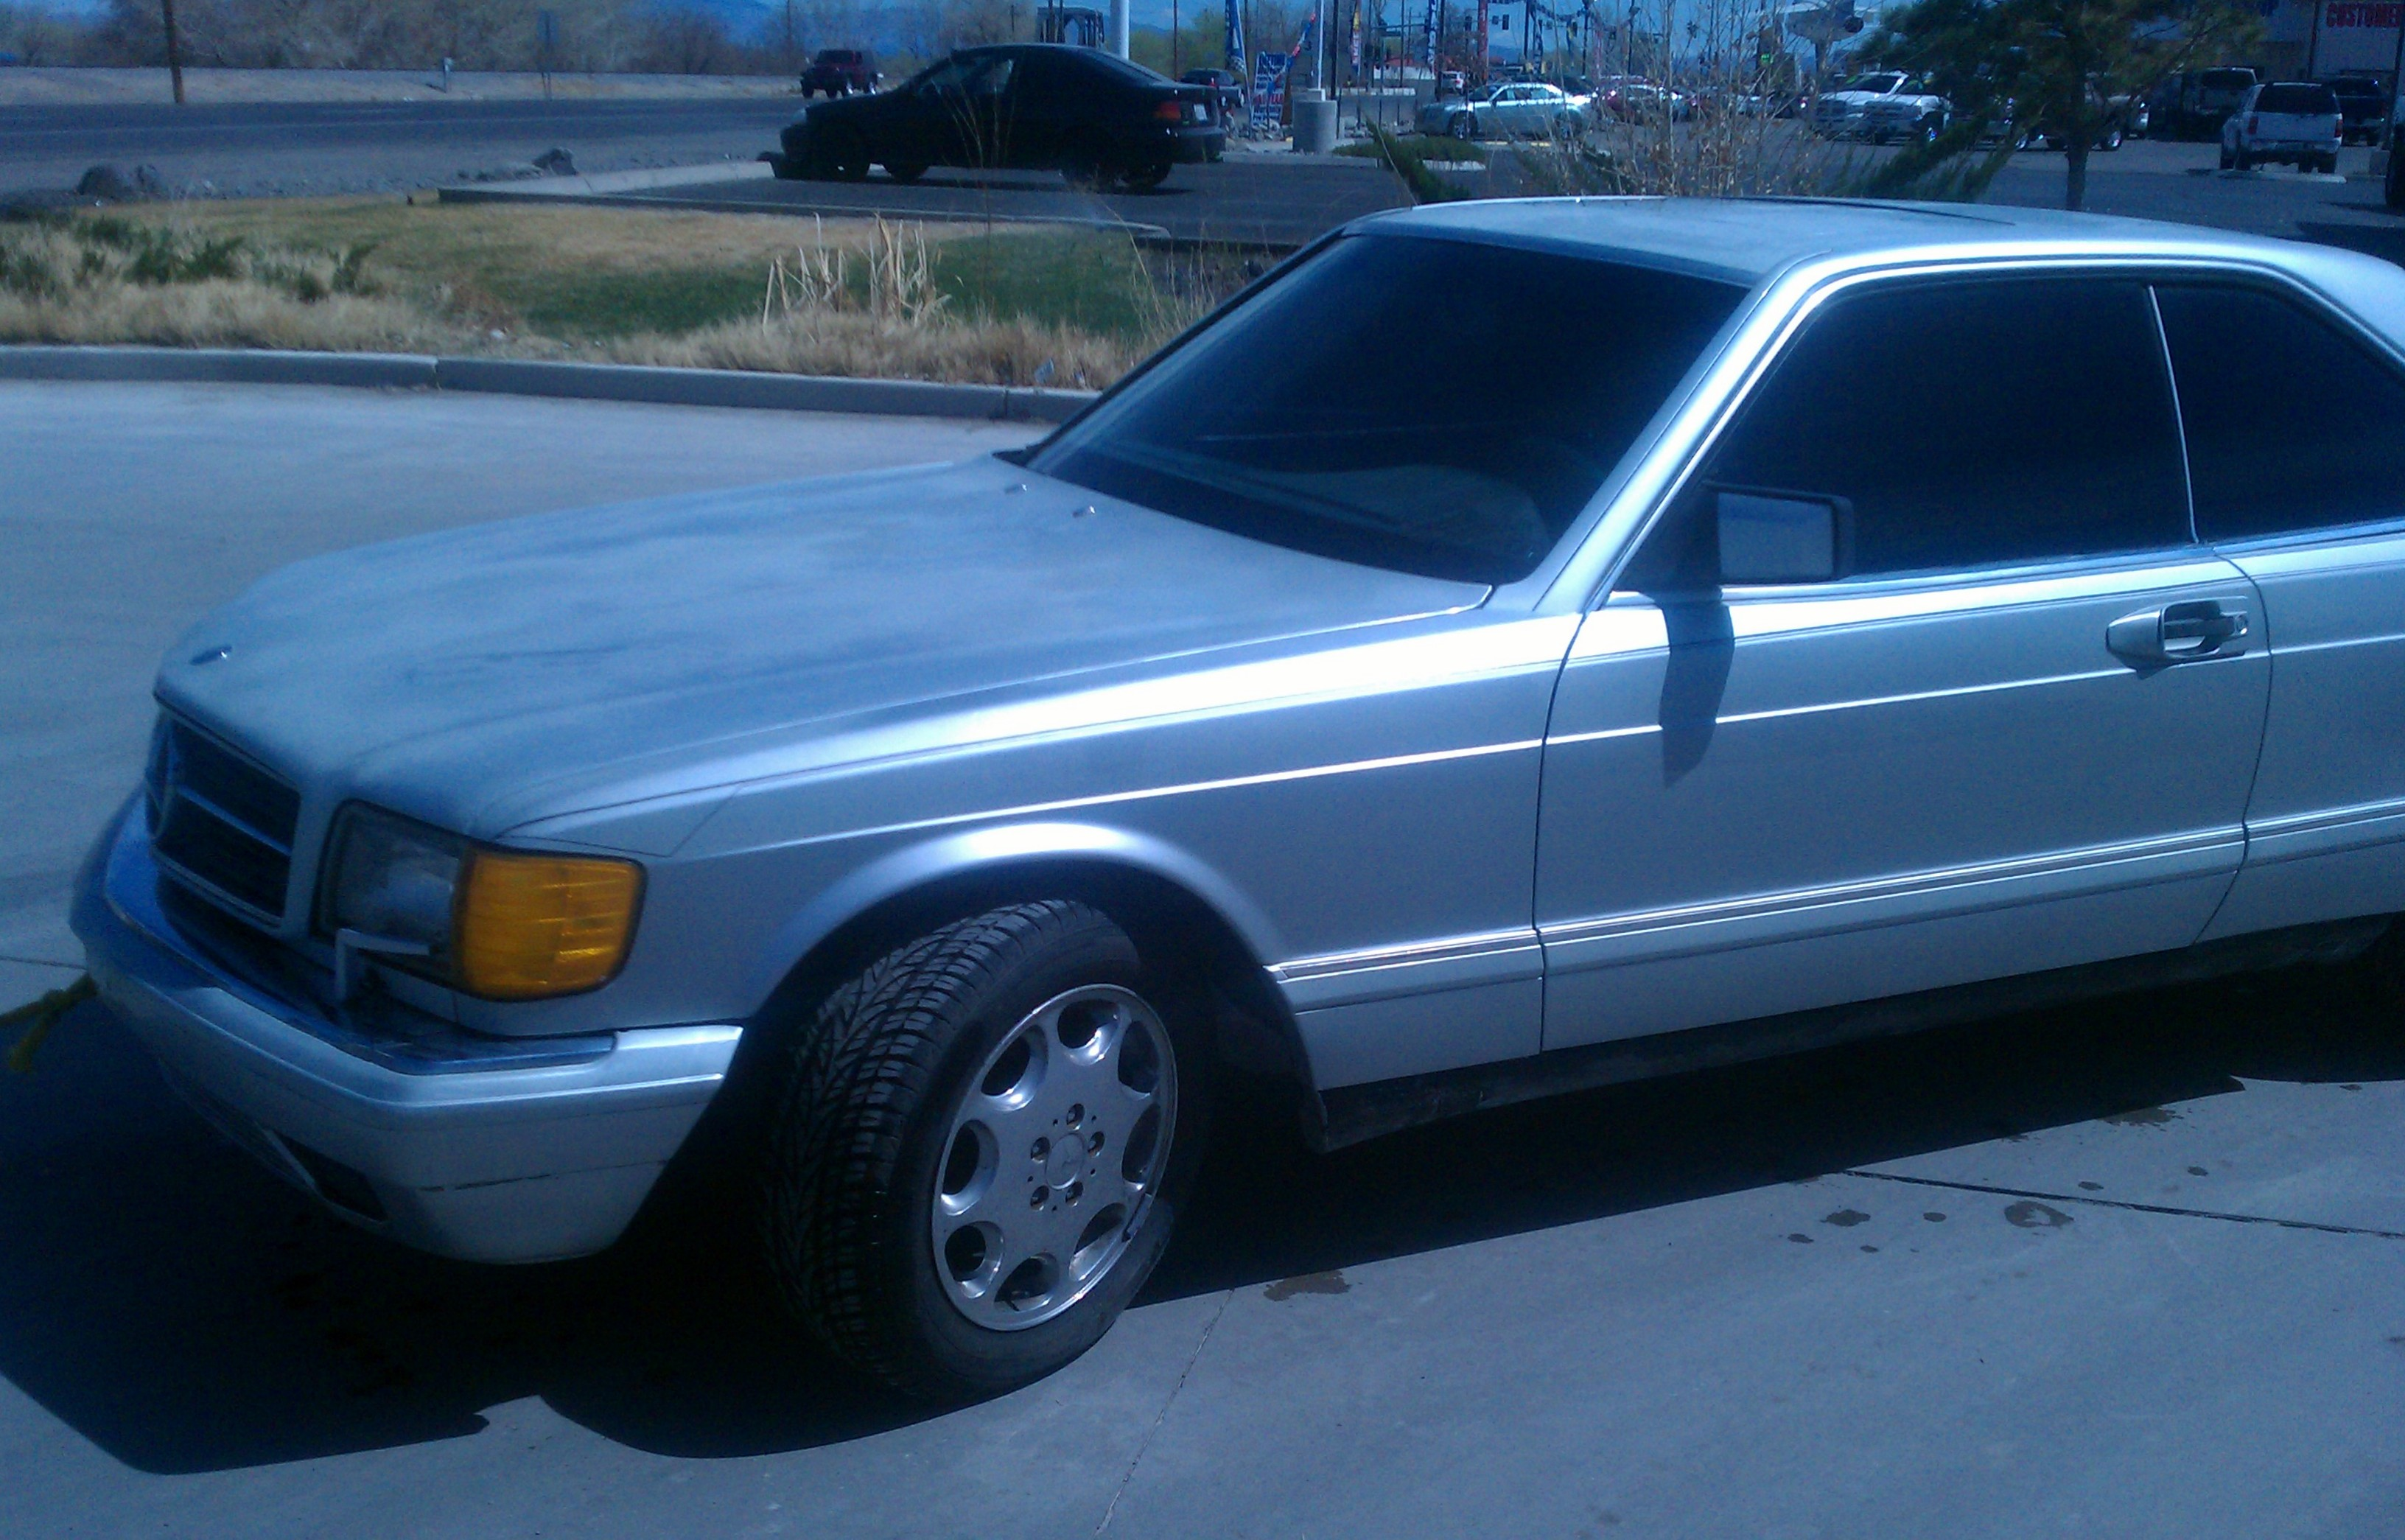 Dark tinted windows 1986 mercedes benz 560 sec for sale for 1986 mercedes benz 560 sec